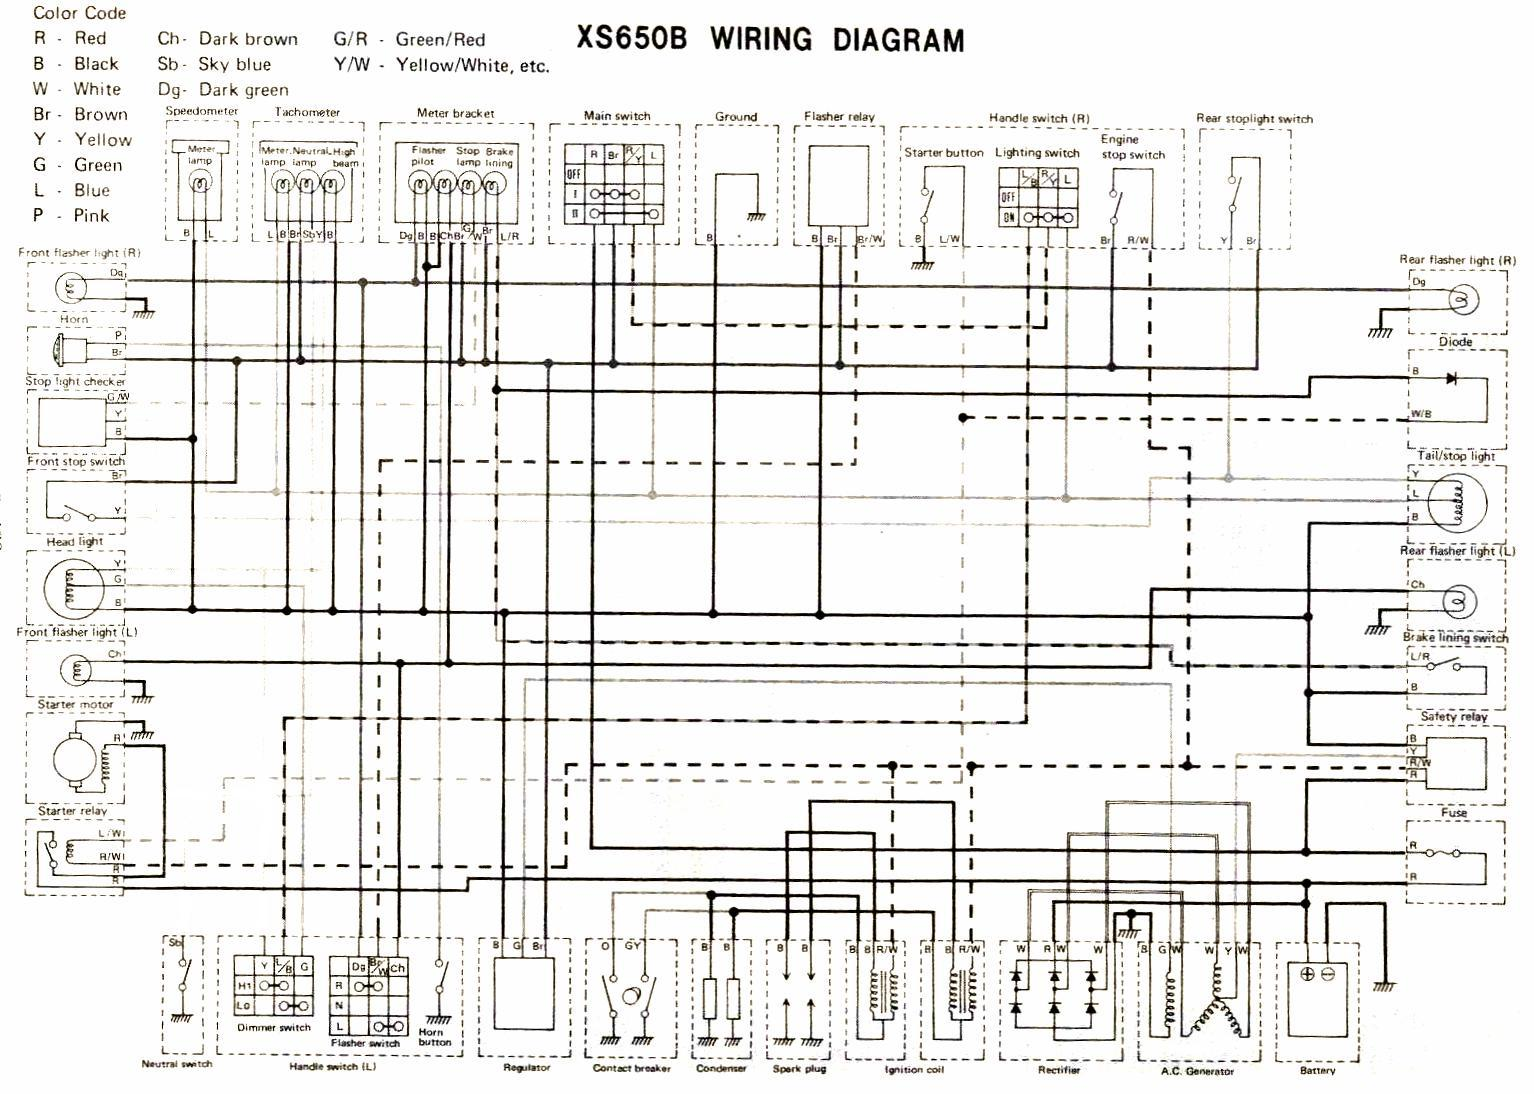 75XS650B wiring diagrams yamaha v star 650 wiring diagram at nearapp.co